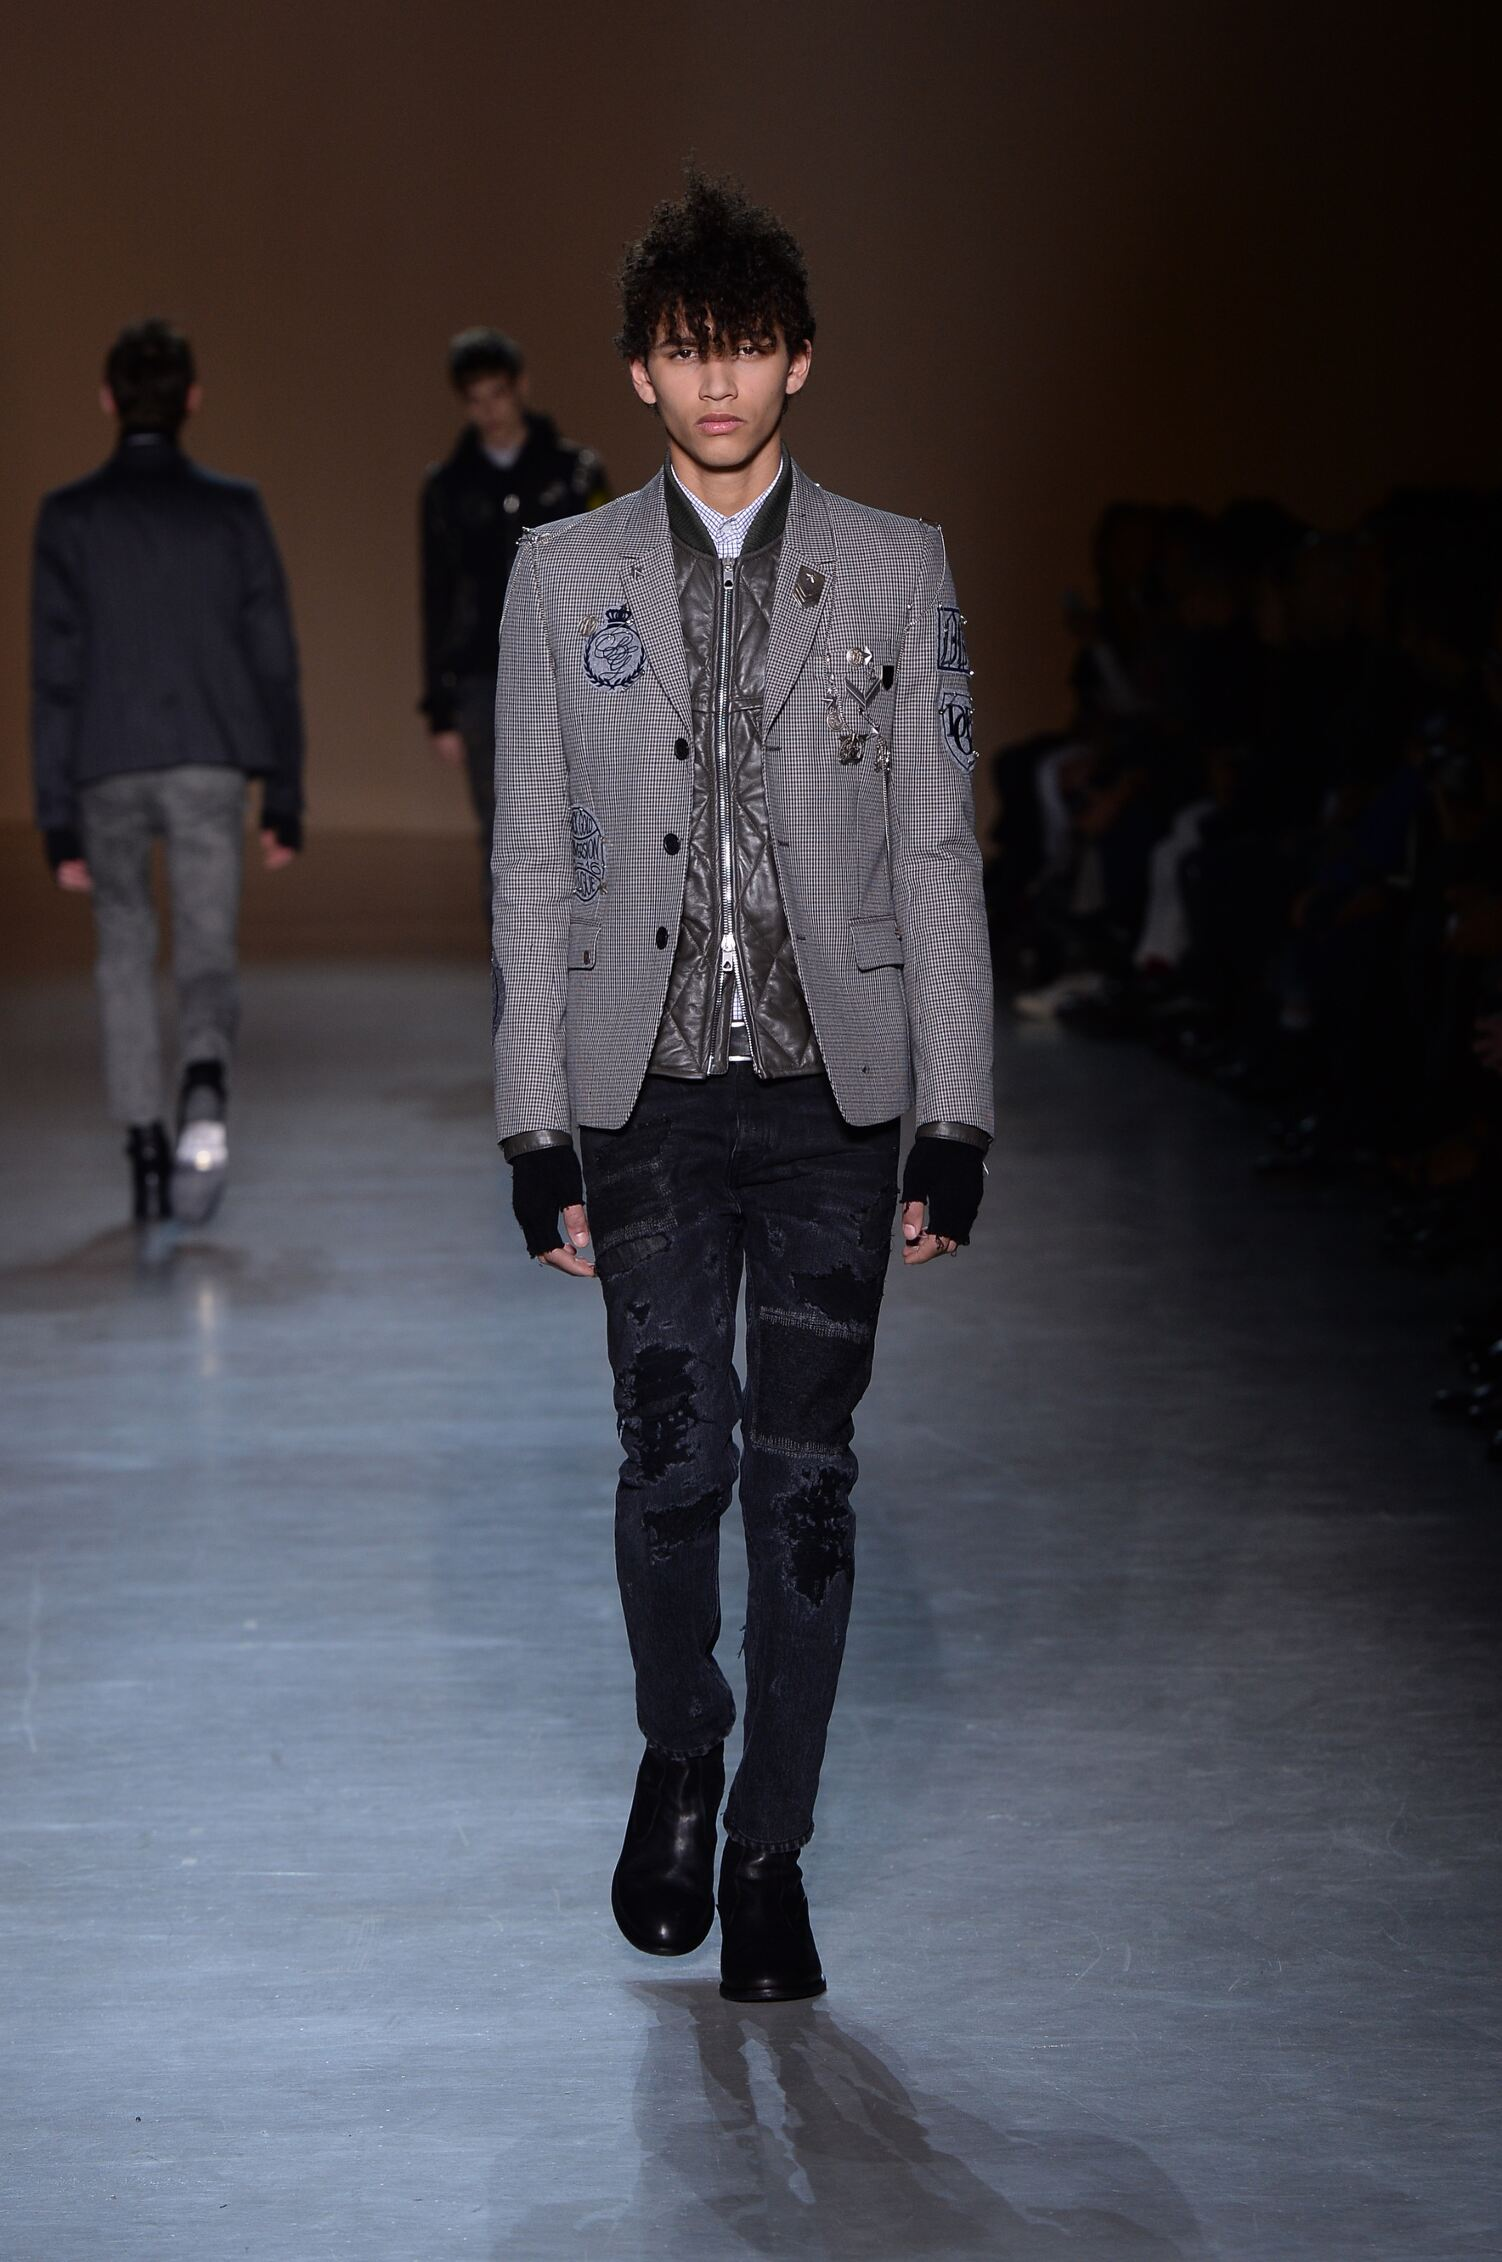 Runway Diesel Black Gold Fall Winter 2015 16 Men's Collection Milan Fashion Week